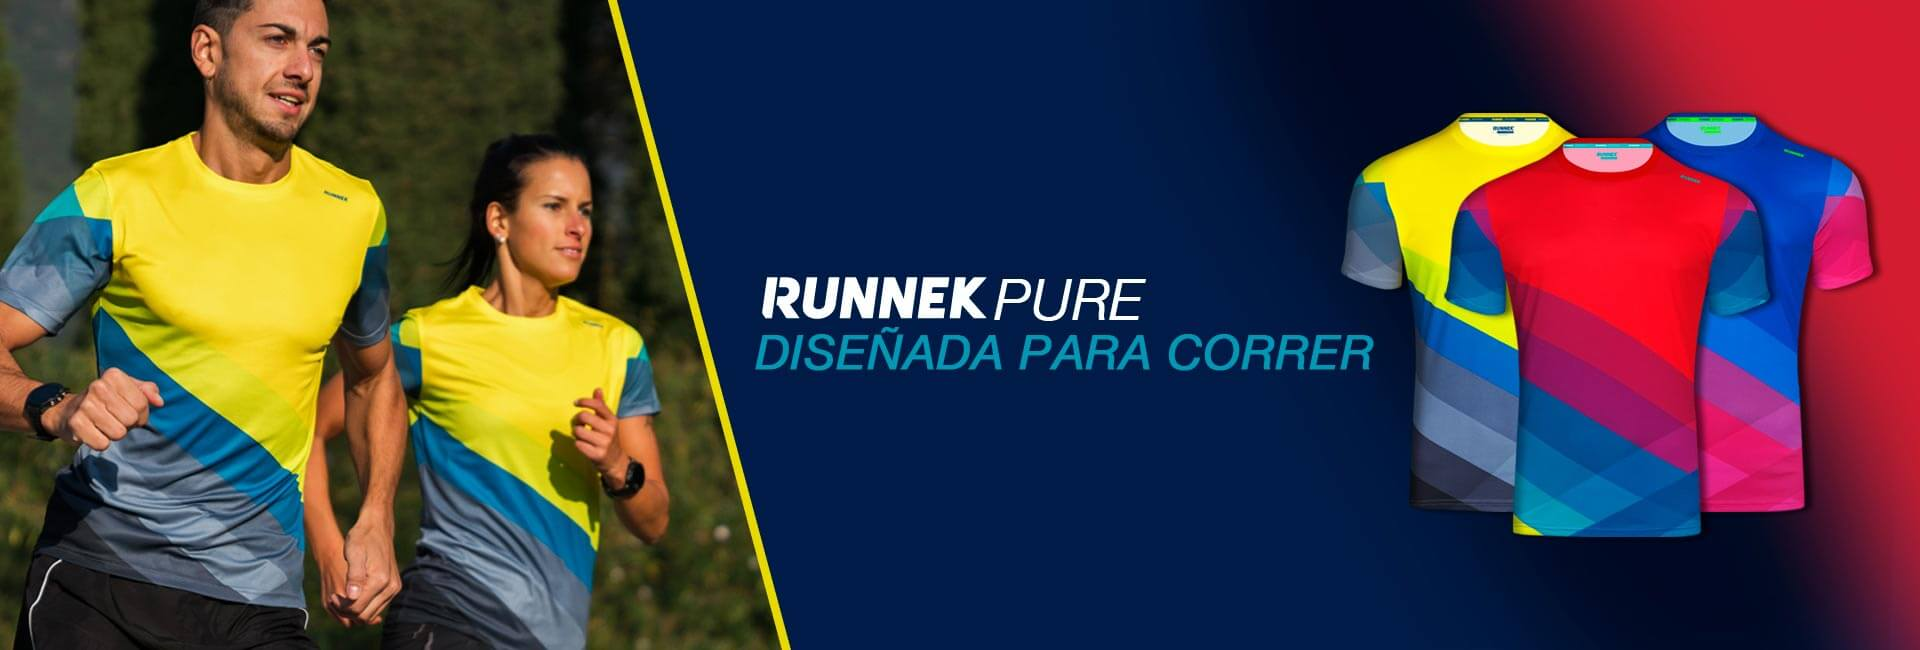 Runnek Pure model